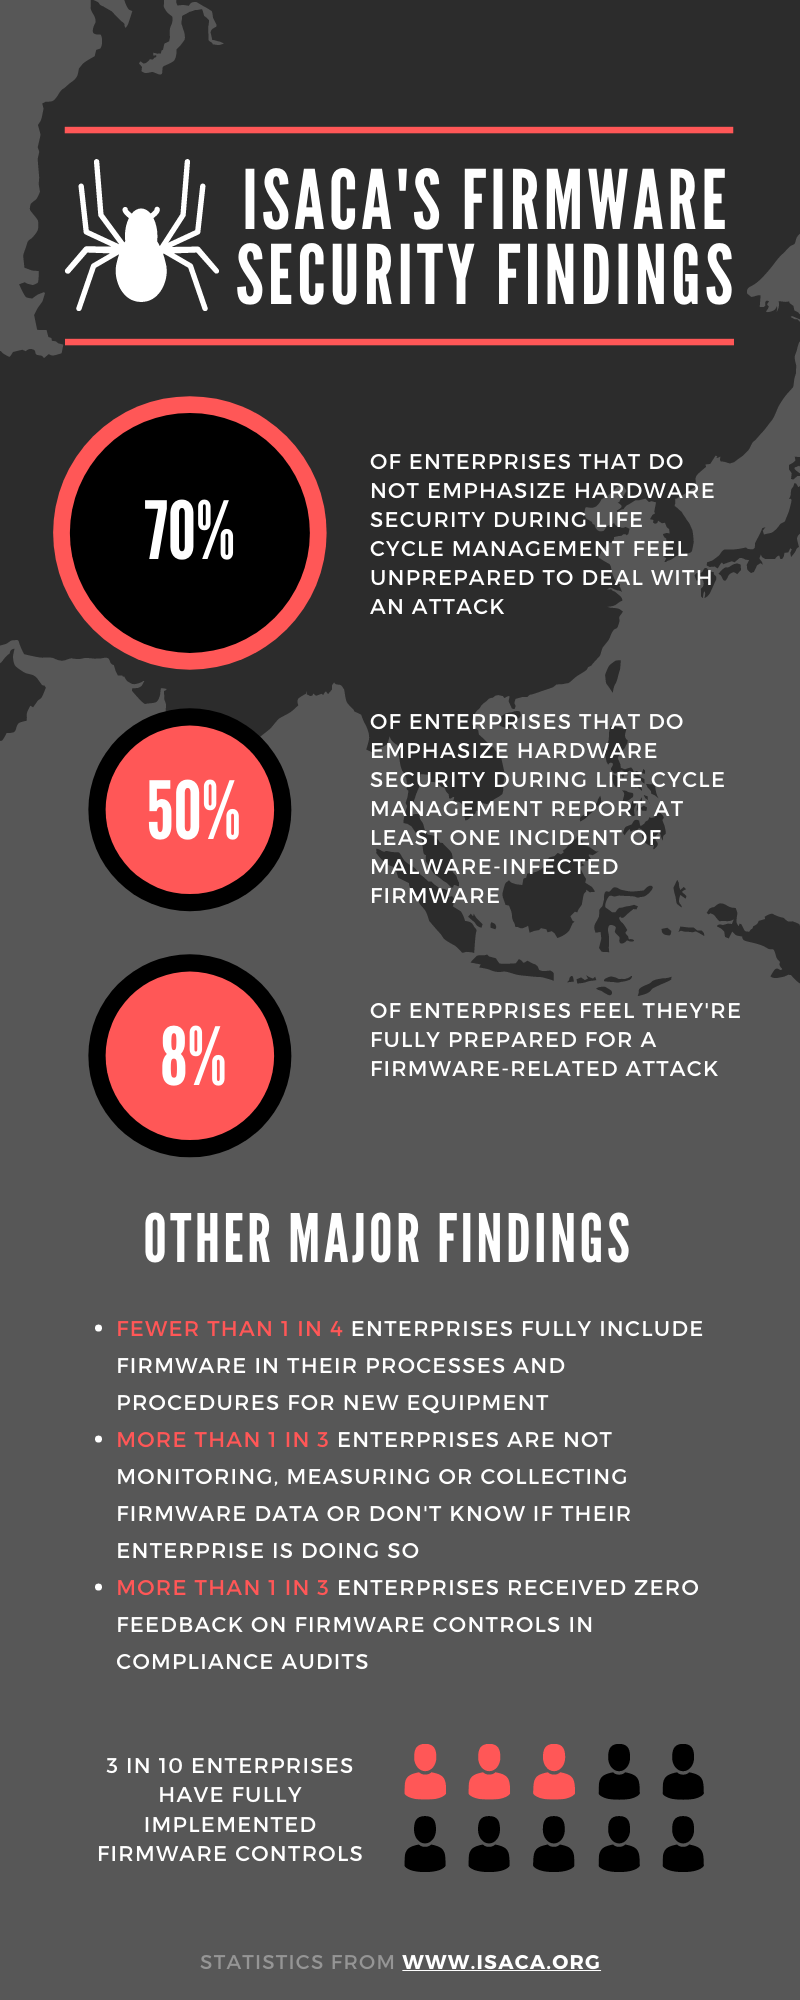 ISACA Firmware Security infographic by Trenton Systems